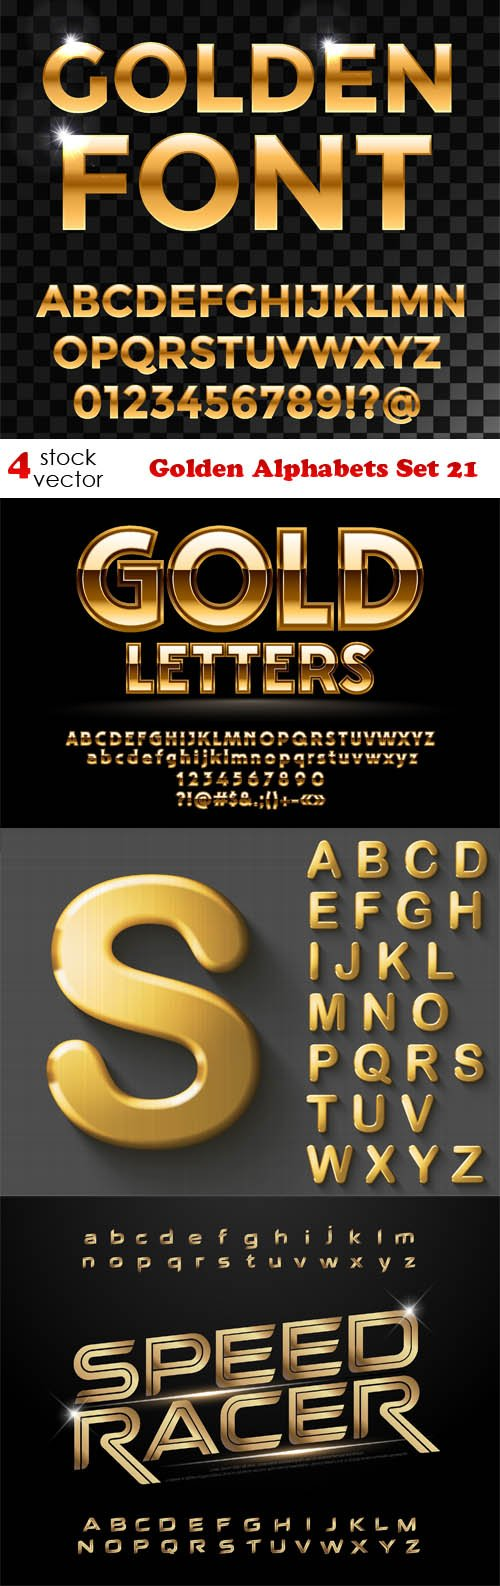 Vectors - Golden Alphabets Set 21